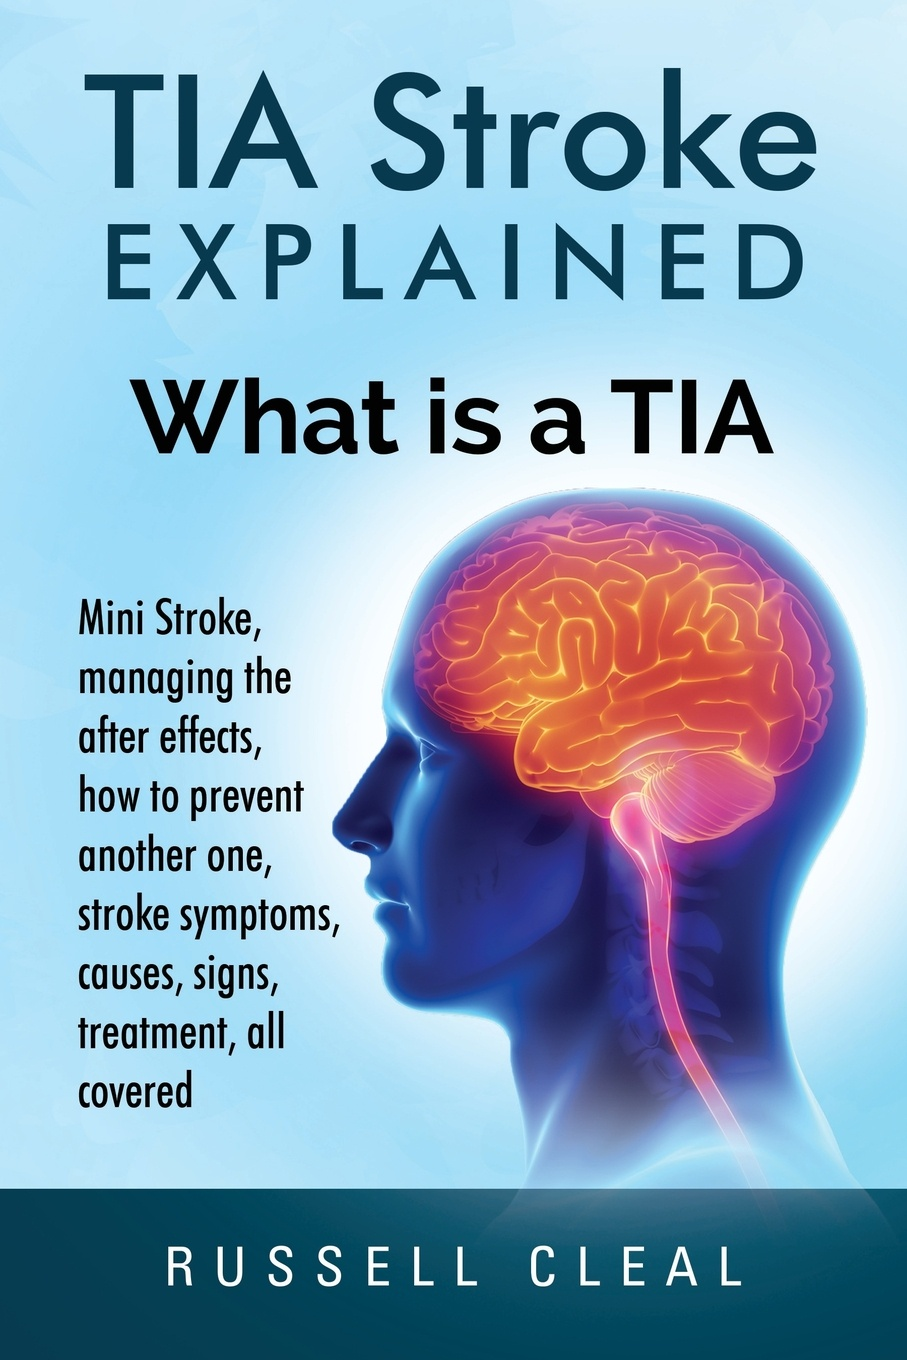 Russell Cleal Tia Stroke Explained. What is a Tia, Mini Stroke, managing the after effects, how to prevent another one, stroke symptoms, causes, signs, treatment, all covered gait and balance performance in stroke survivors